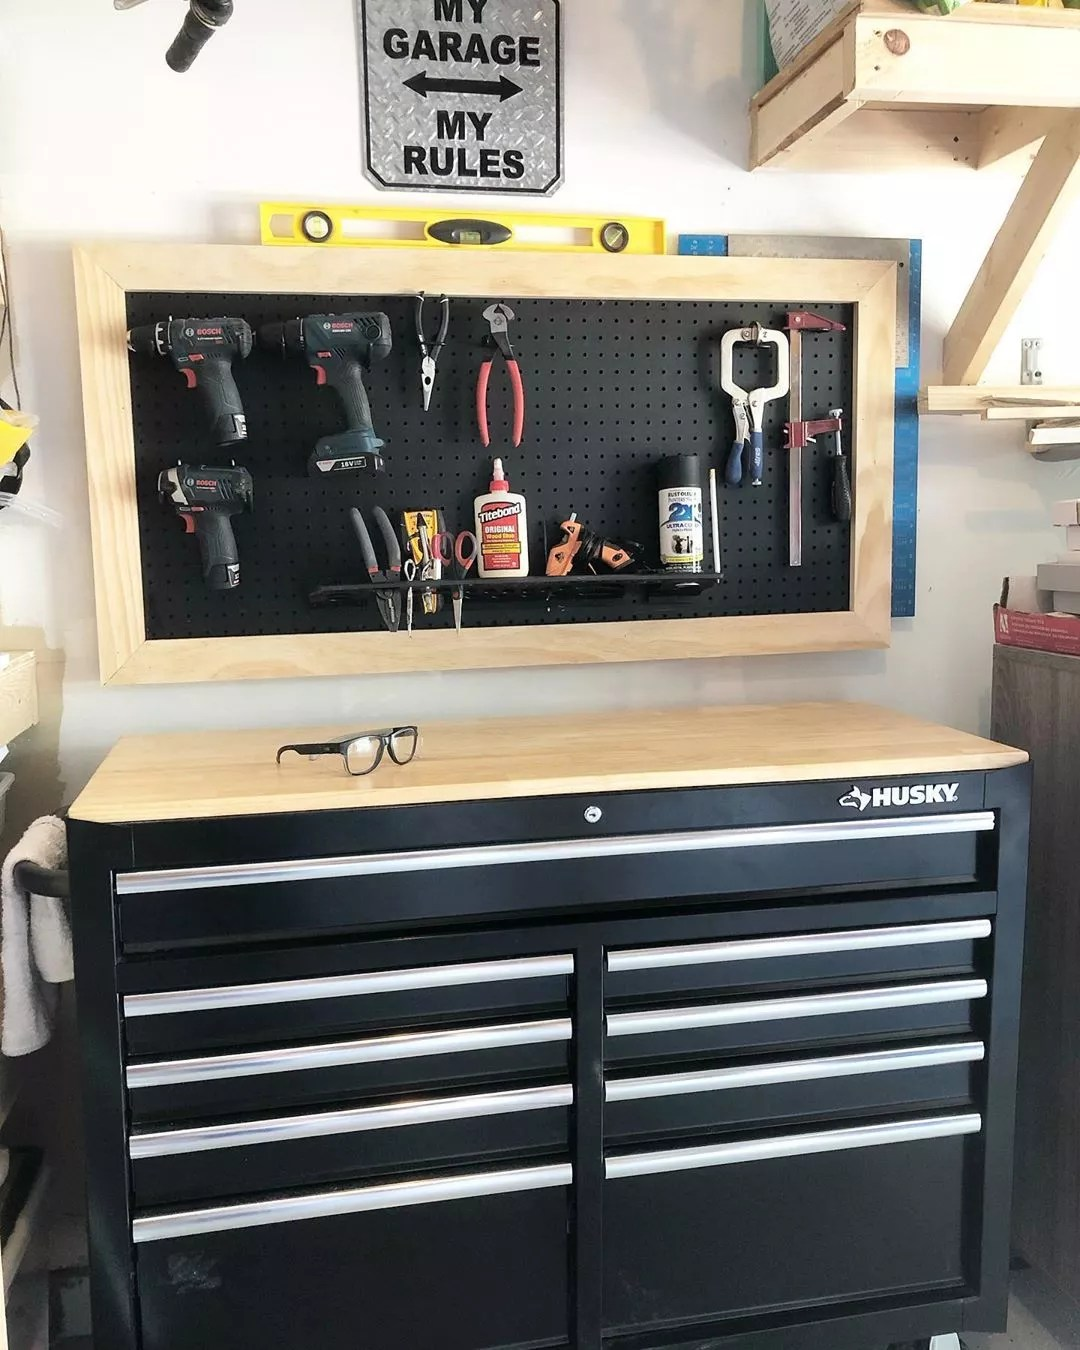 Pegboard with Saws, Hammers, and Tools in a Garage. Photo by Instagram user @daniraehome